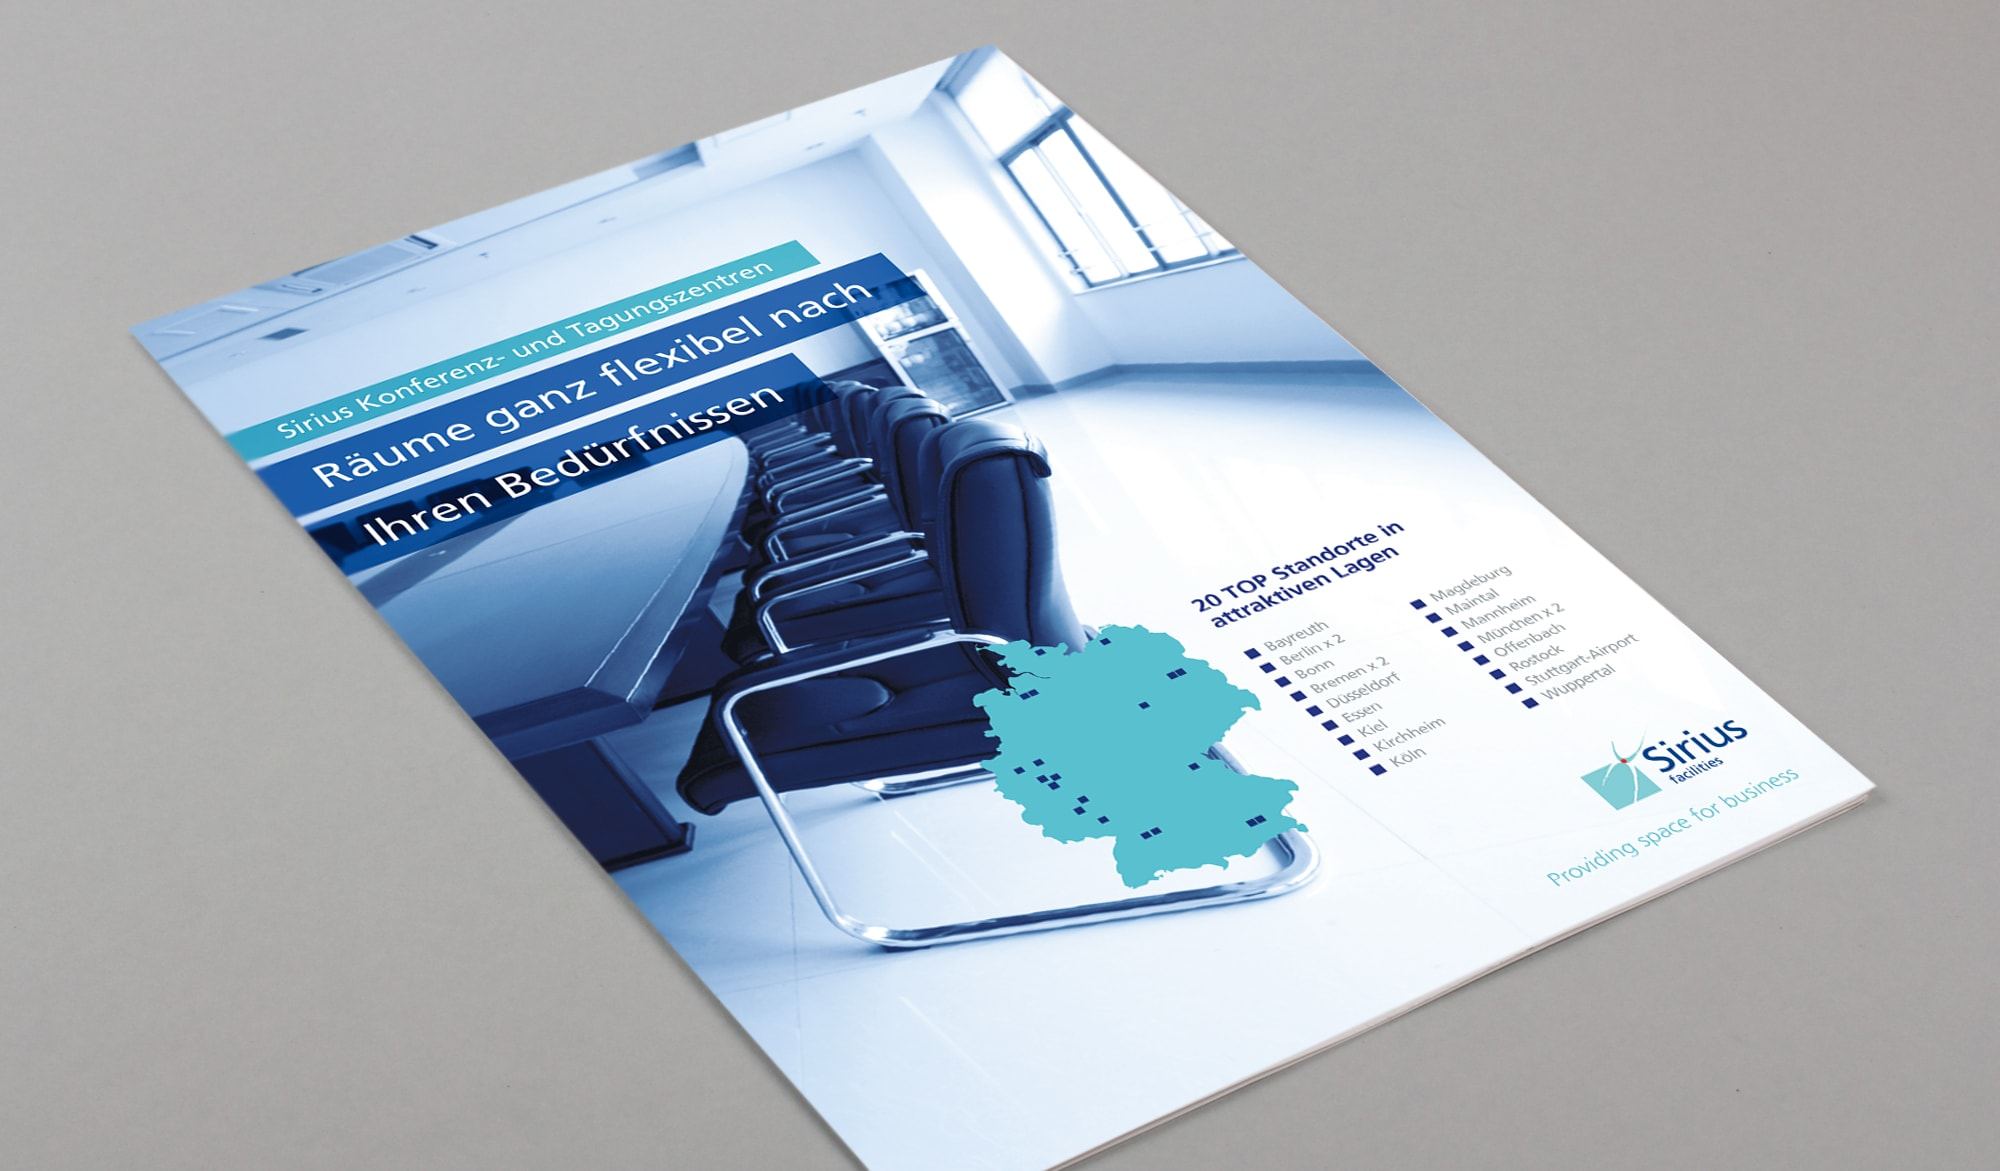 Sirius Facilities conferencing brochure